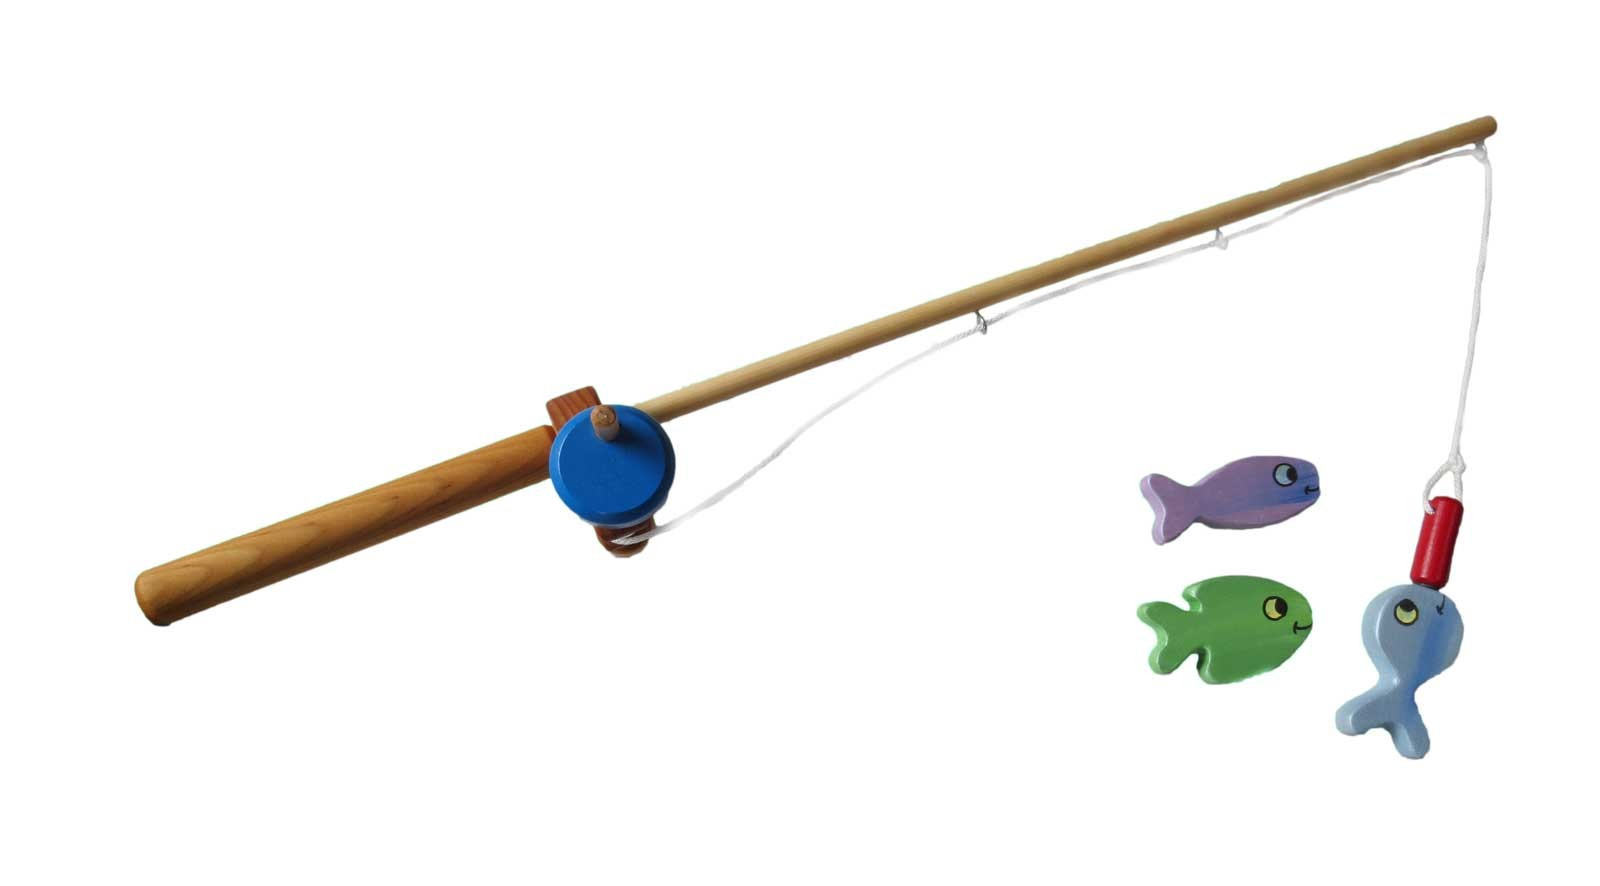 wooden pole clipart - clipart kid, Fishing Rod